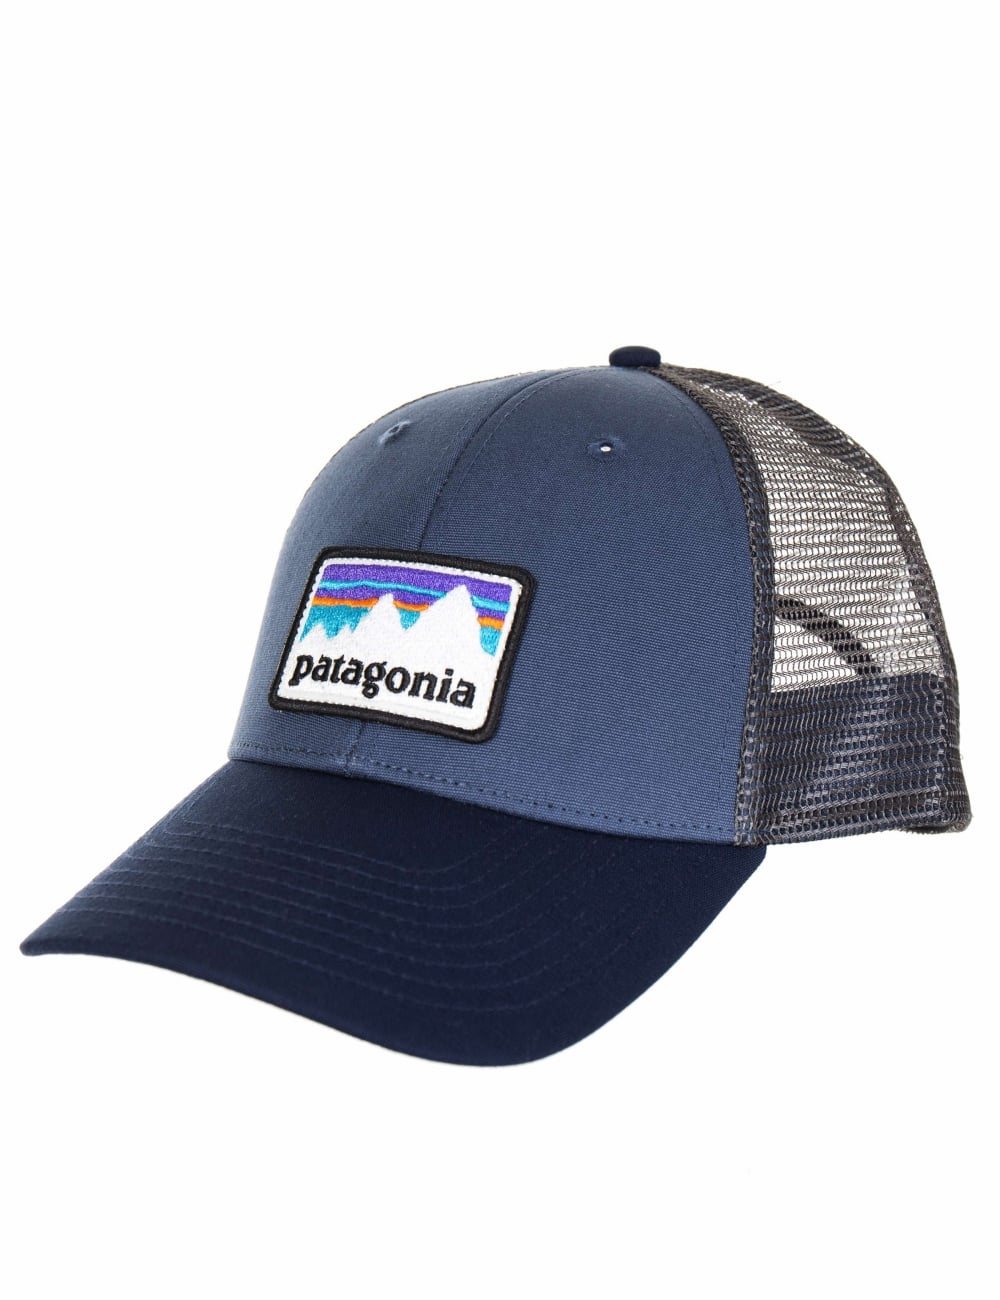 a9148f0c091 Patagonia Shop Sticker Patch LoPro Trucker Hat - Dolomite Blue - Hat ...